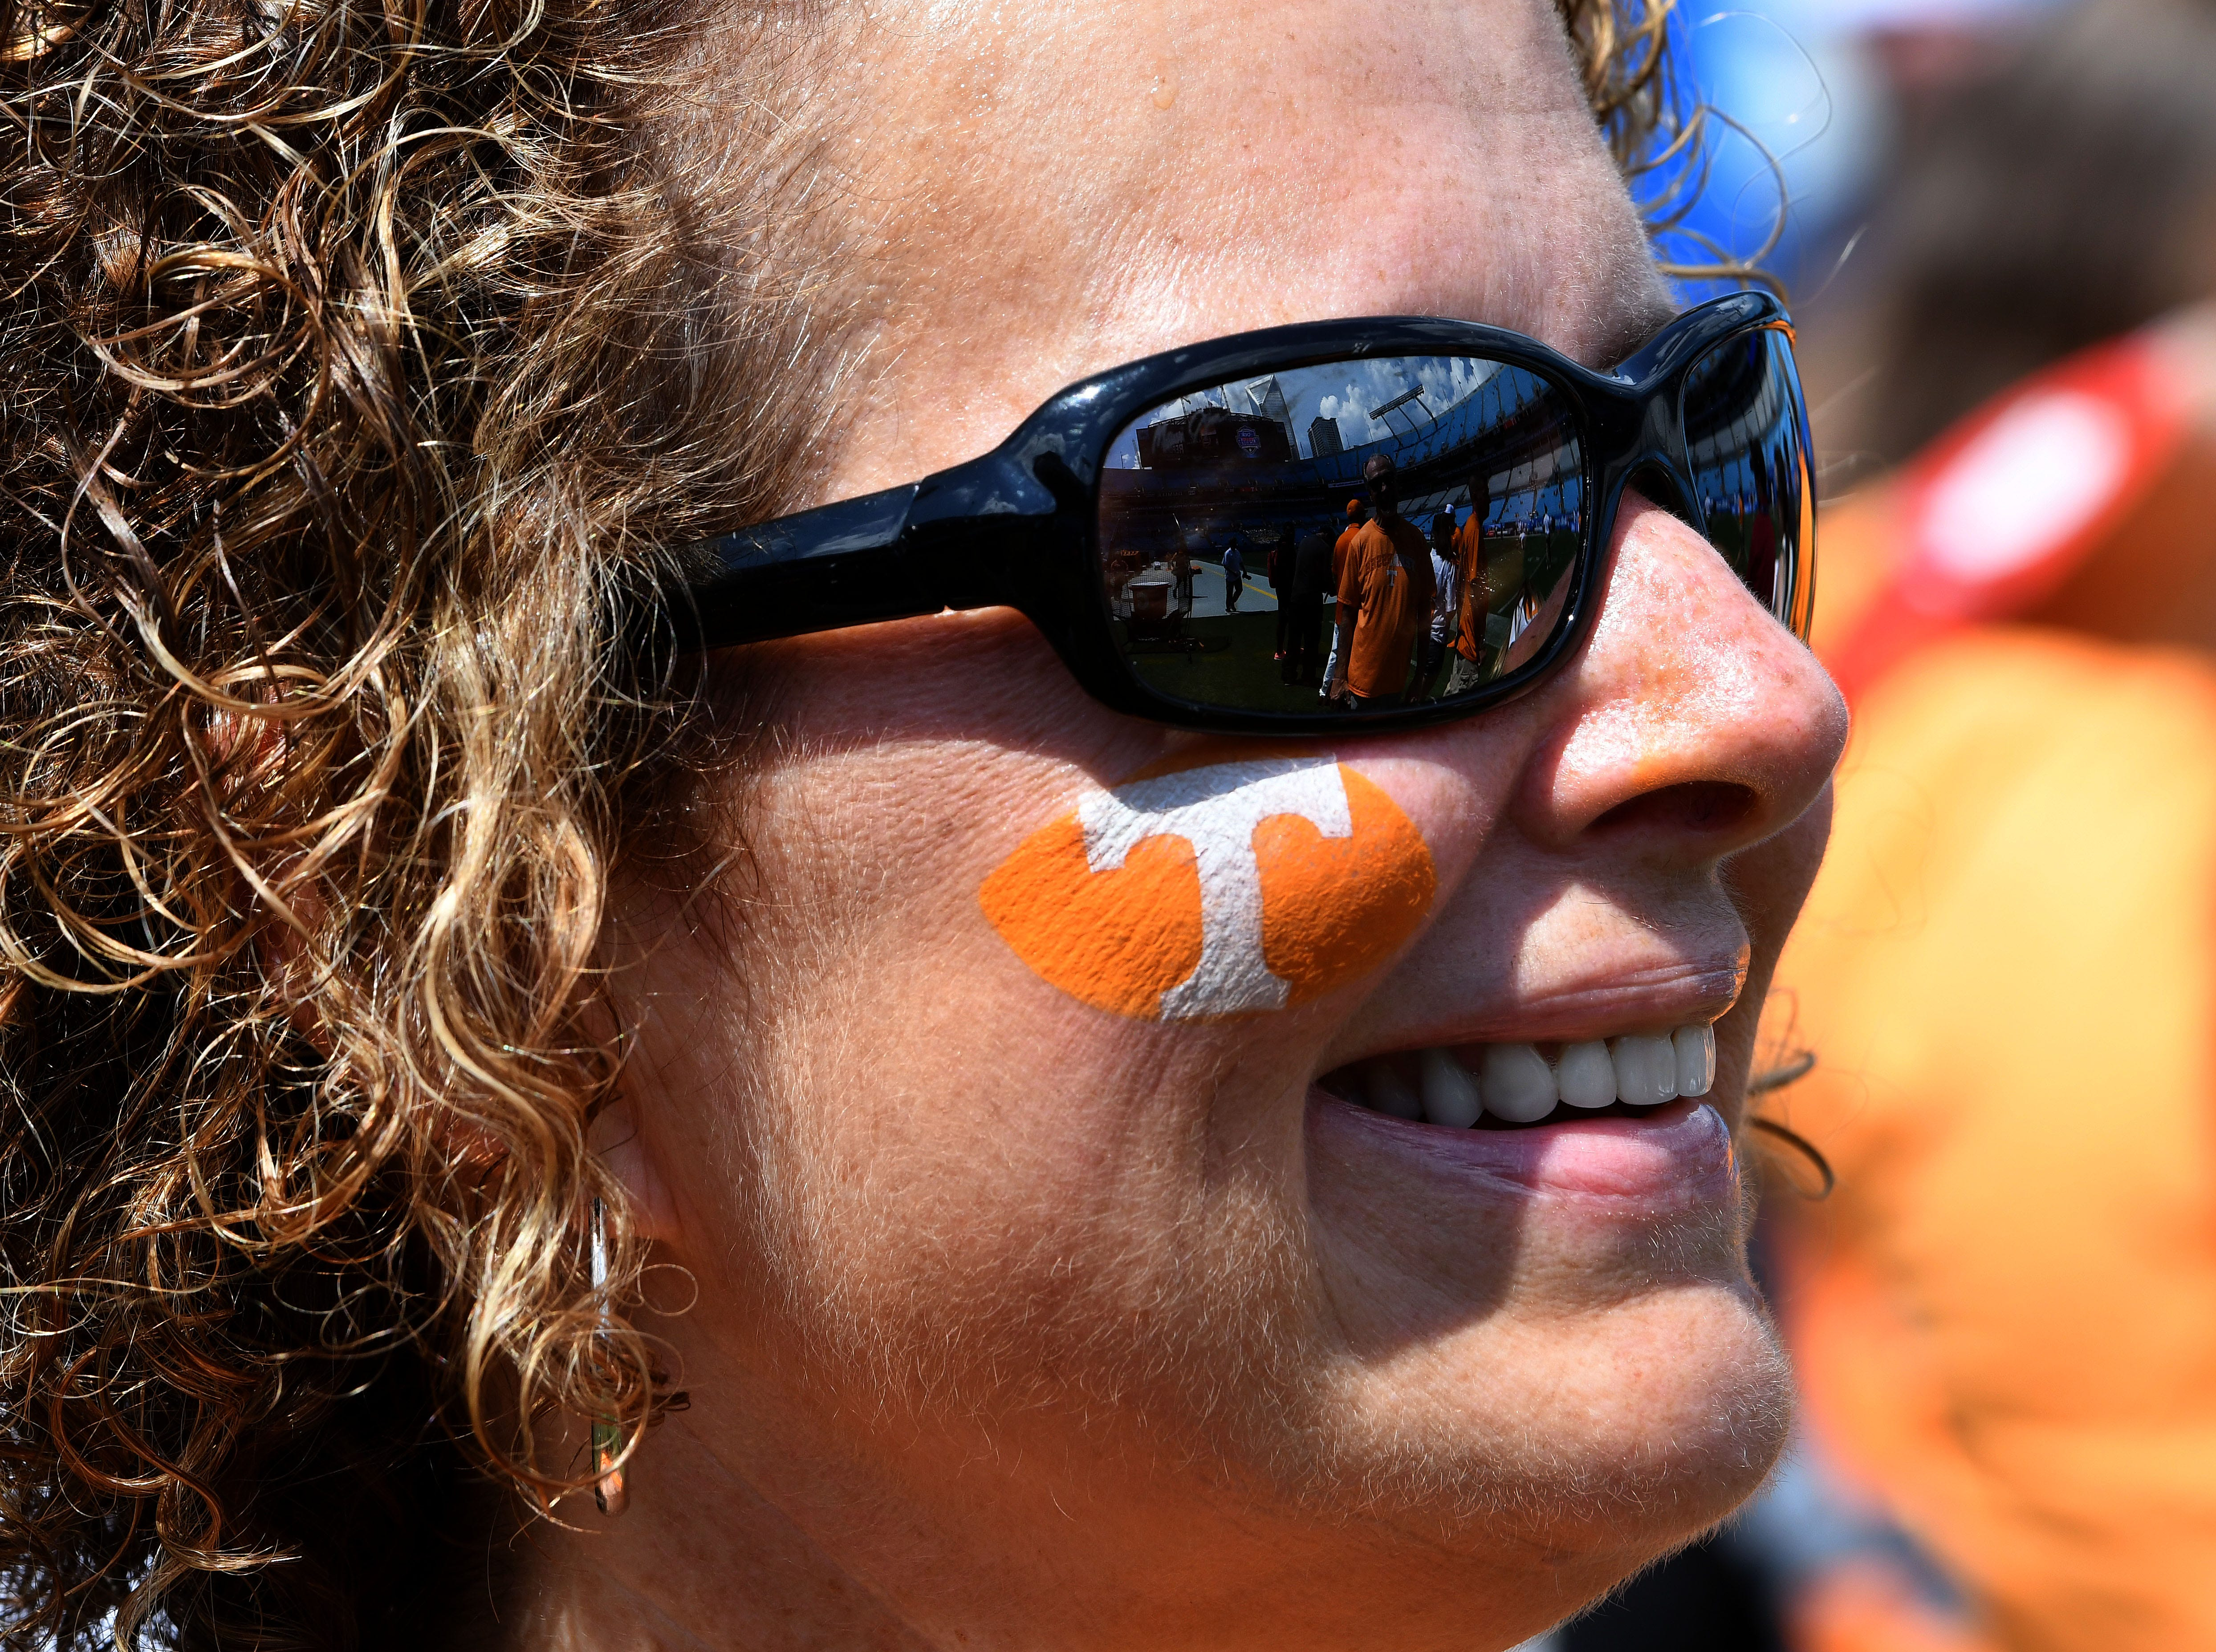 Sherrie Allen from Knoxville during pre-game activities before the game against the West Virginia Mountaineers in the Belk College Kickoff game in Charlotte, NC Saturday, September 1, 2018.